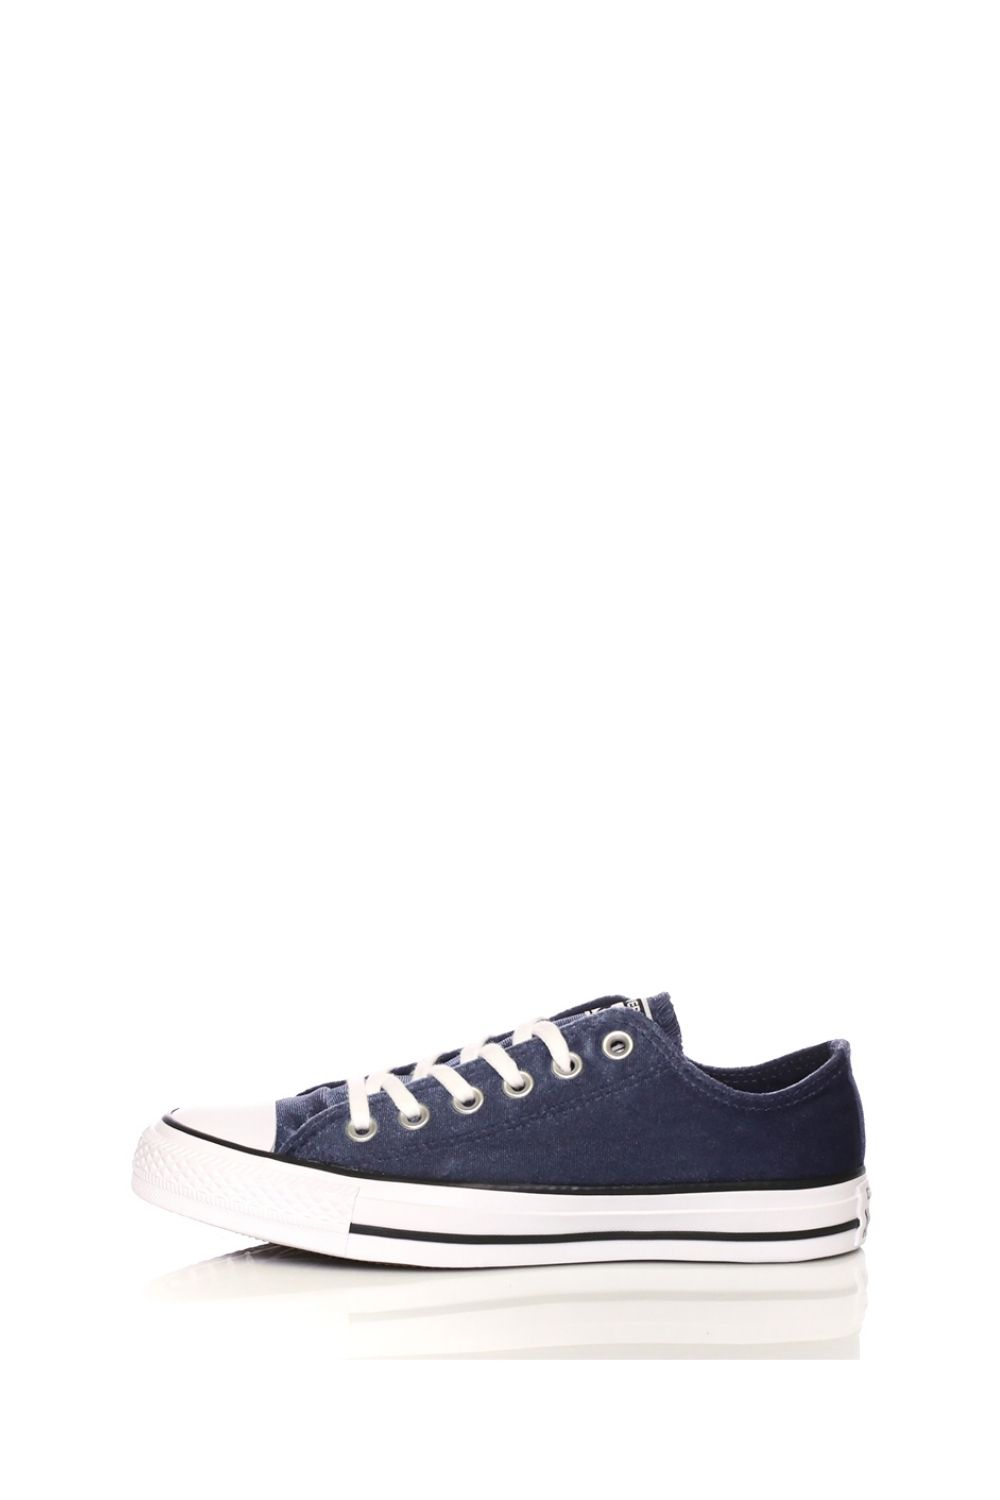 -48% Collective Online CONVERSE – Γυναικεία παπούτσια Chuck Taylor All Star  Ox μπλε 199f4a39bf2